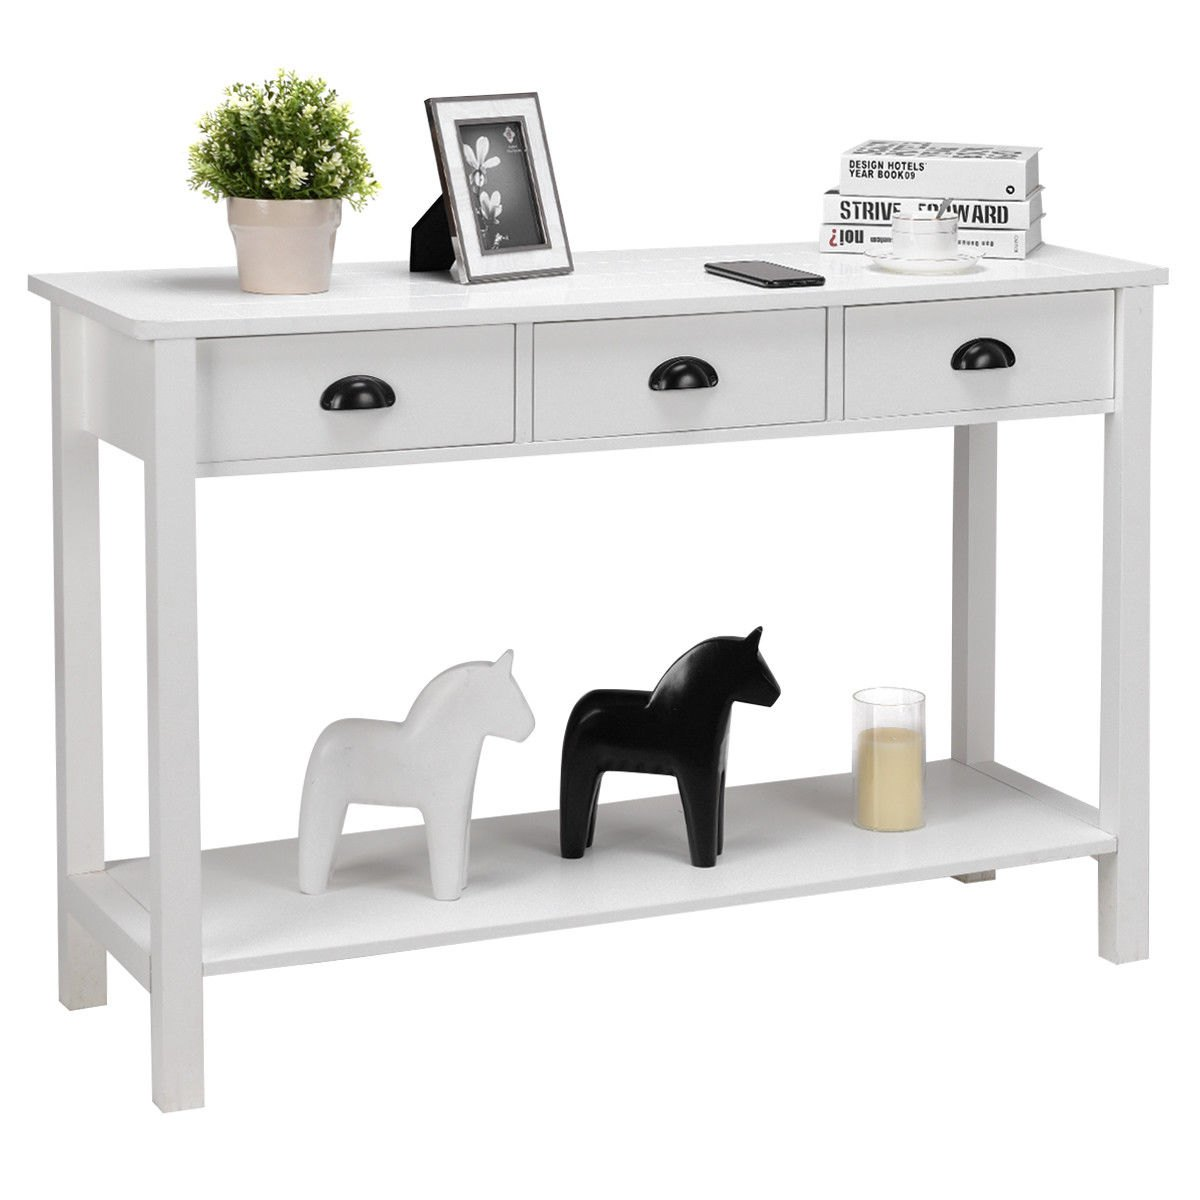 way console table hall side desk accent entryway drawers shelf white small metal garden legs diy bar paper tablecloths glass and chrome lamp coffee top pier outdoor wicker